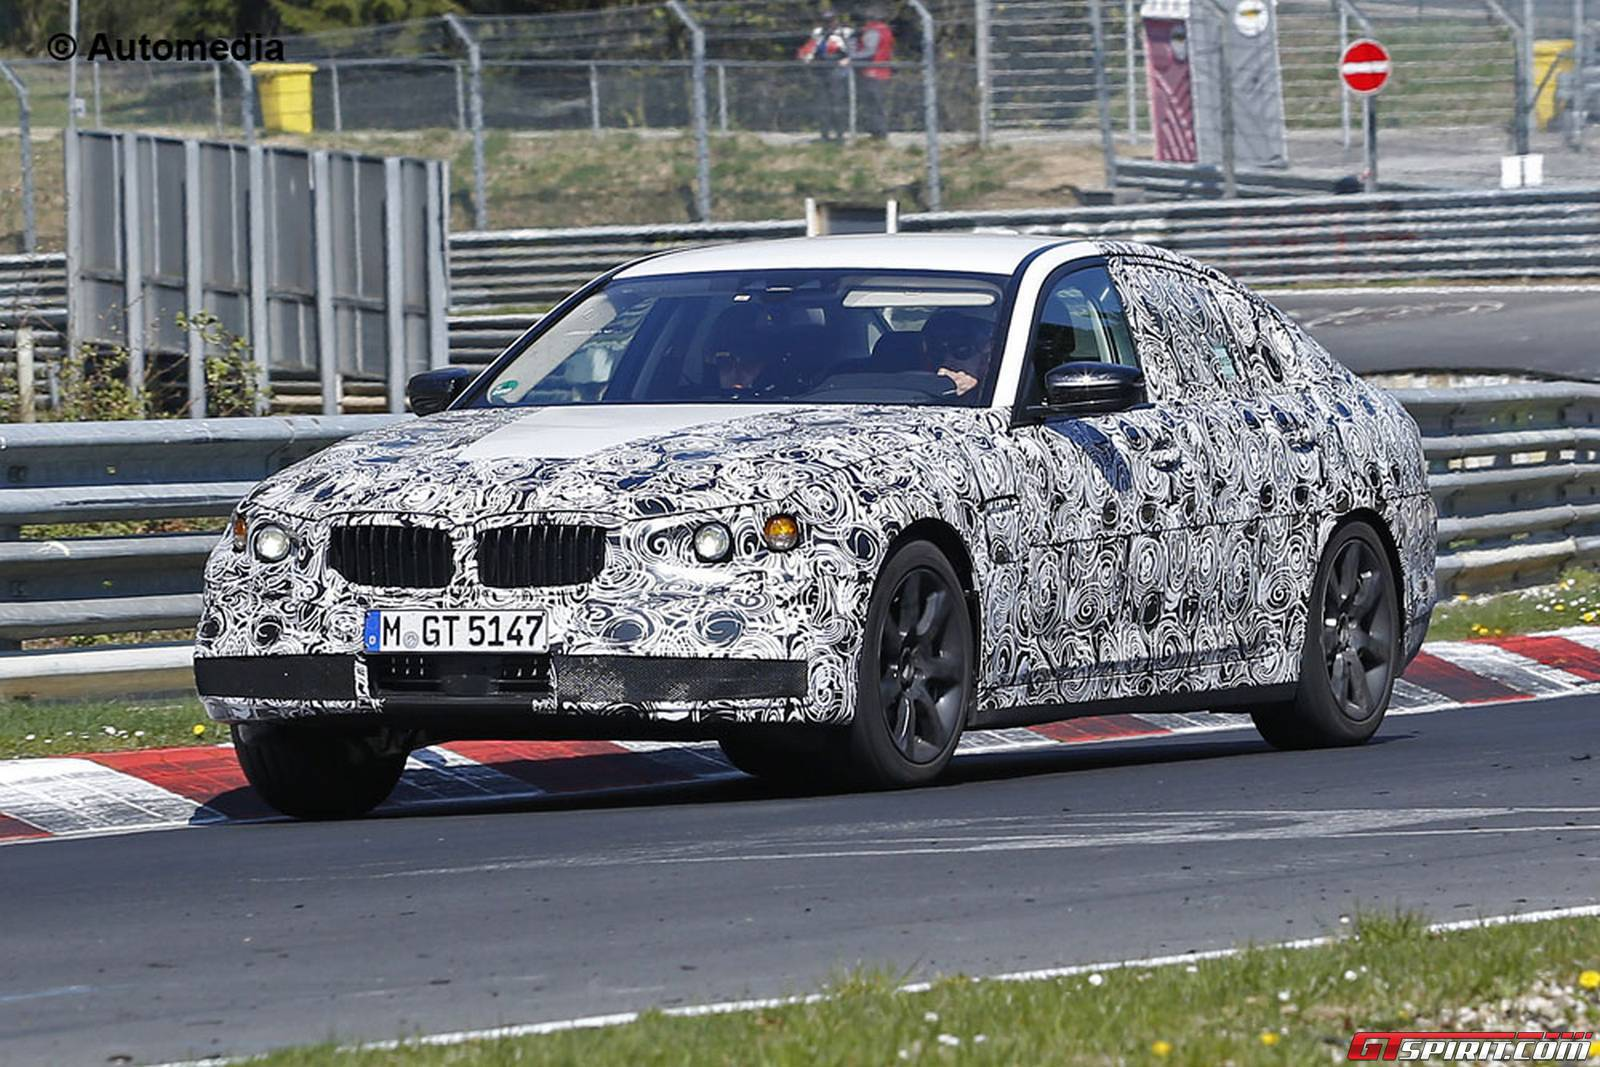 next gen bmw 5 series spy shots emerge again at the nurburgring gtspirit. Black Bedroom Furniture Sets. Home Design Ideas